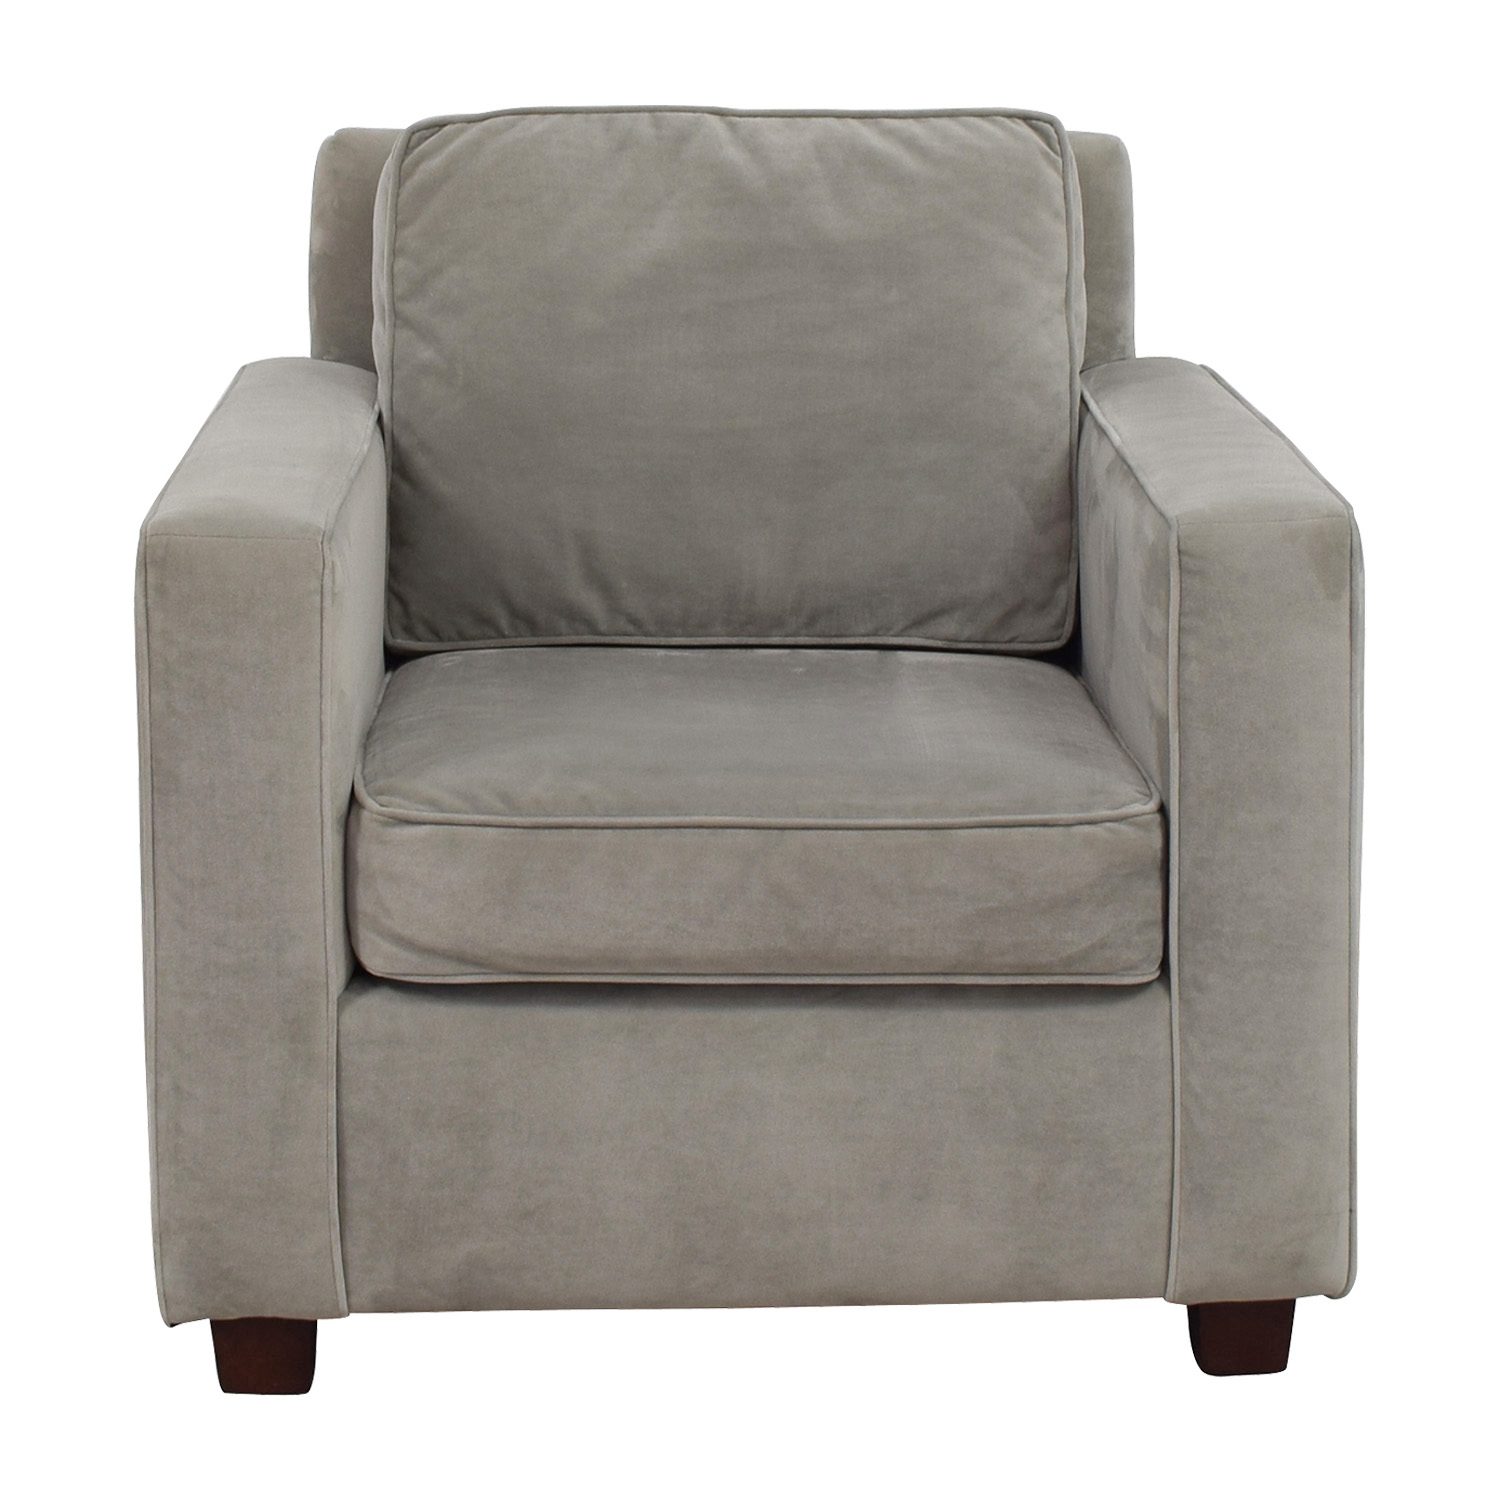 West Elm West Elm Grey Armchair second hand